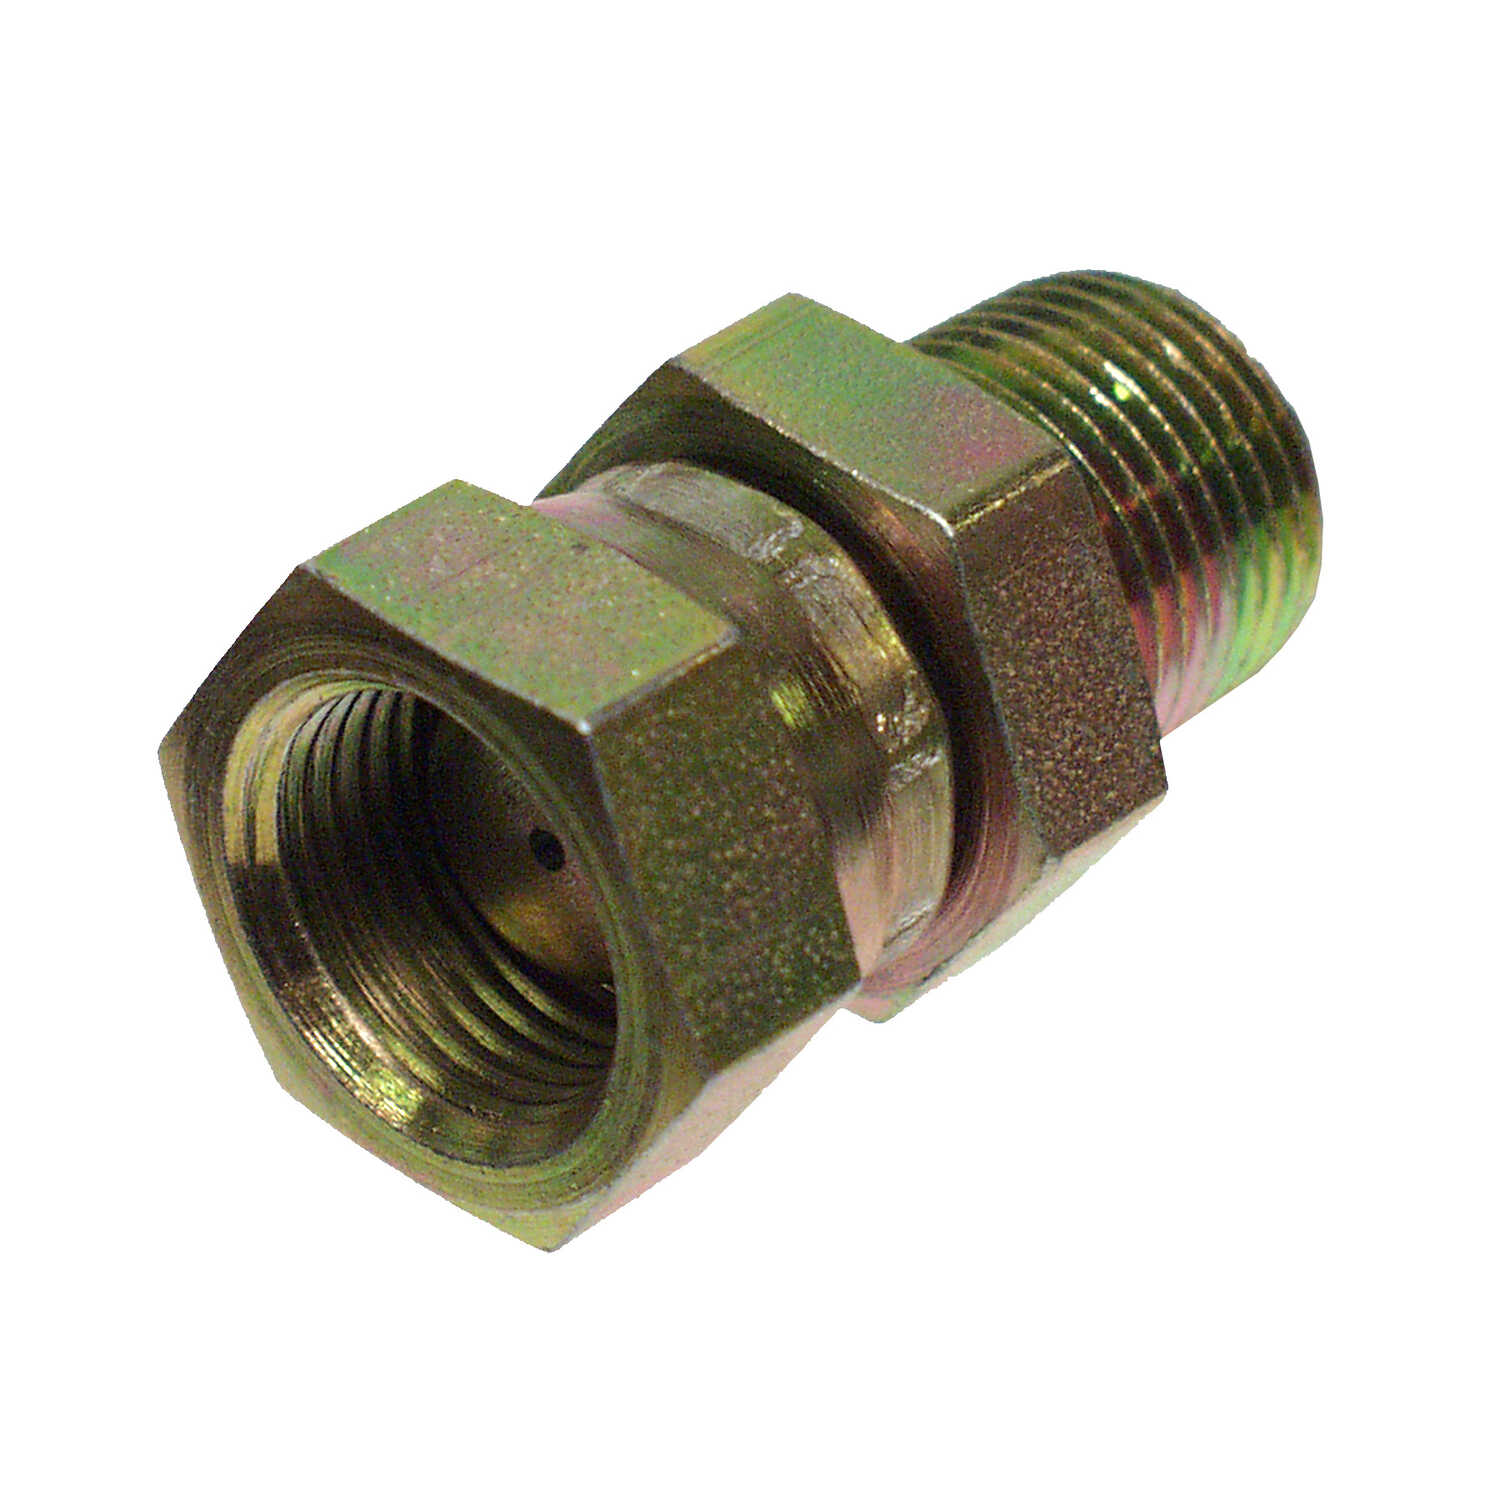 Universal  Steel  Hydraulic Adapter  1/2 in. Dia. x 1/2 in. Dia. 1